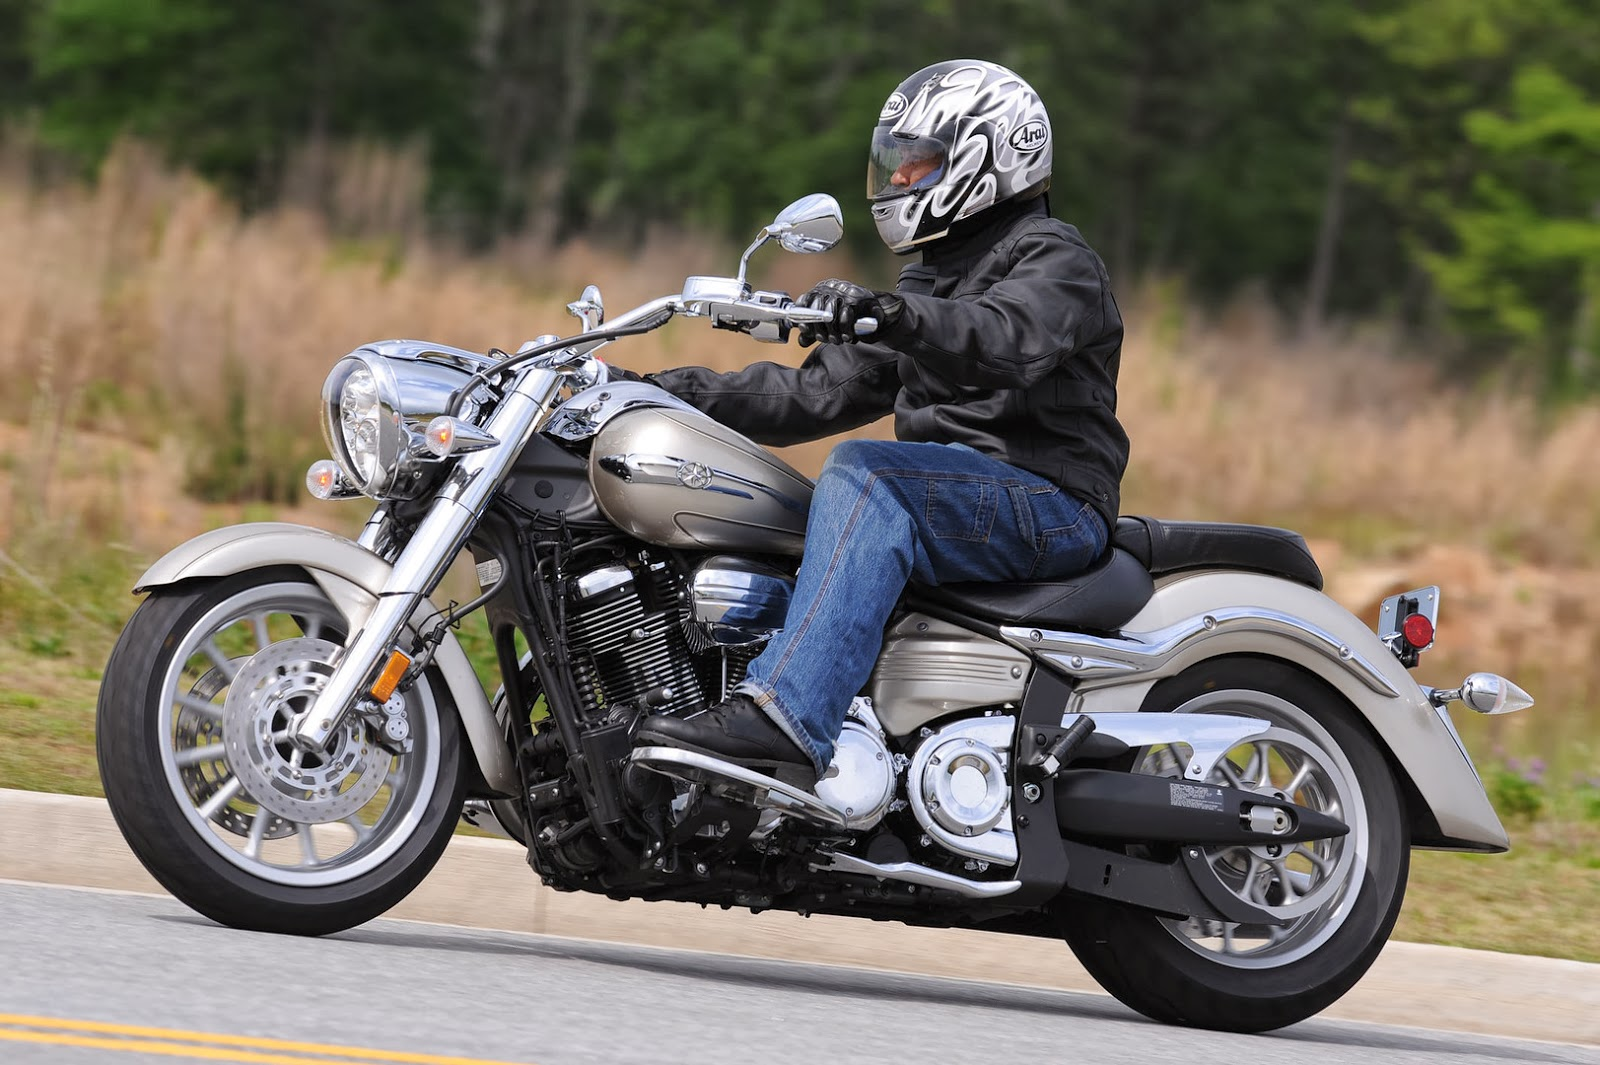 cars wallpapers motorcycles harley - photo #19